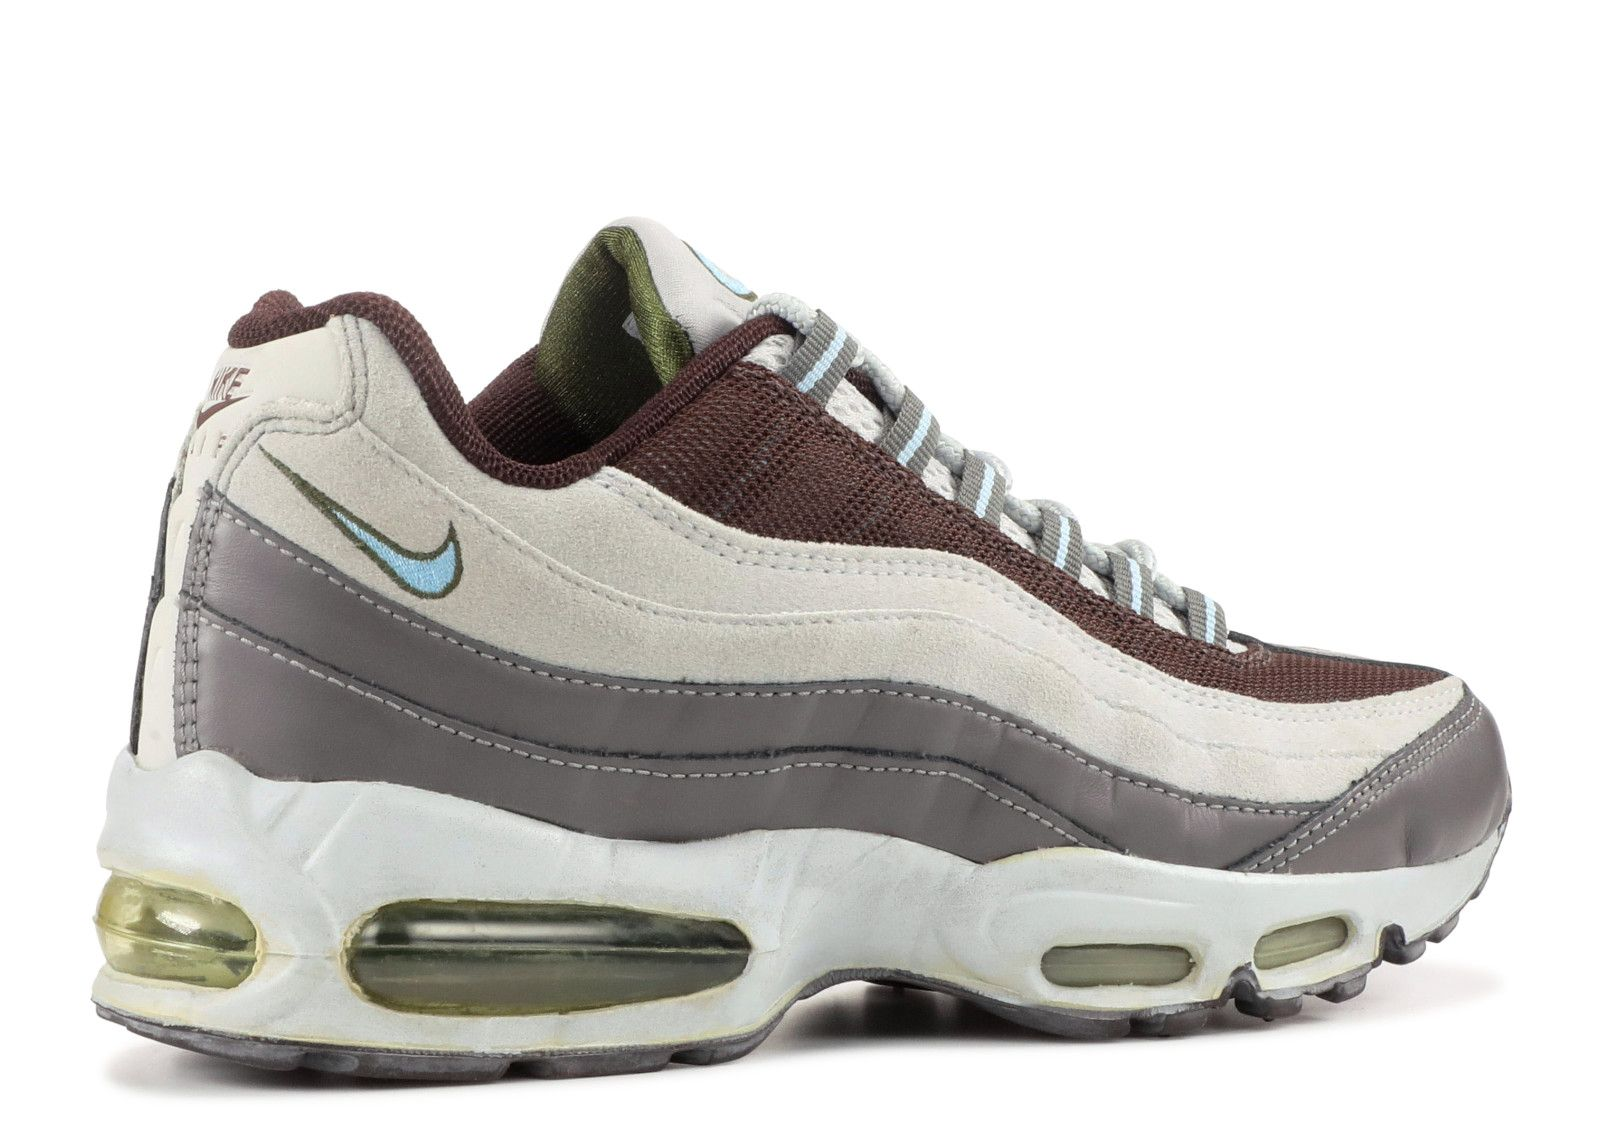 brand new 231b9 325b8 Cheap Nike Air Max 95 Jetstream Blue Chill Soft Grey Trainers For Sale  Online